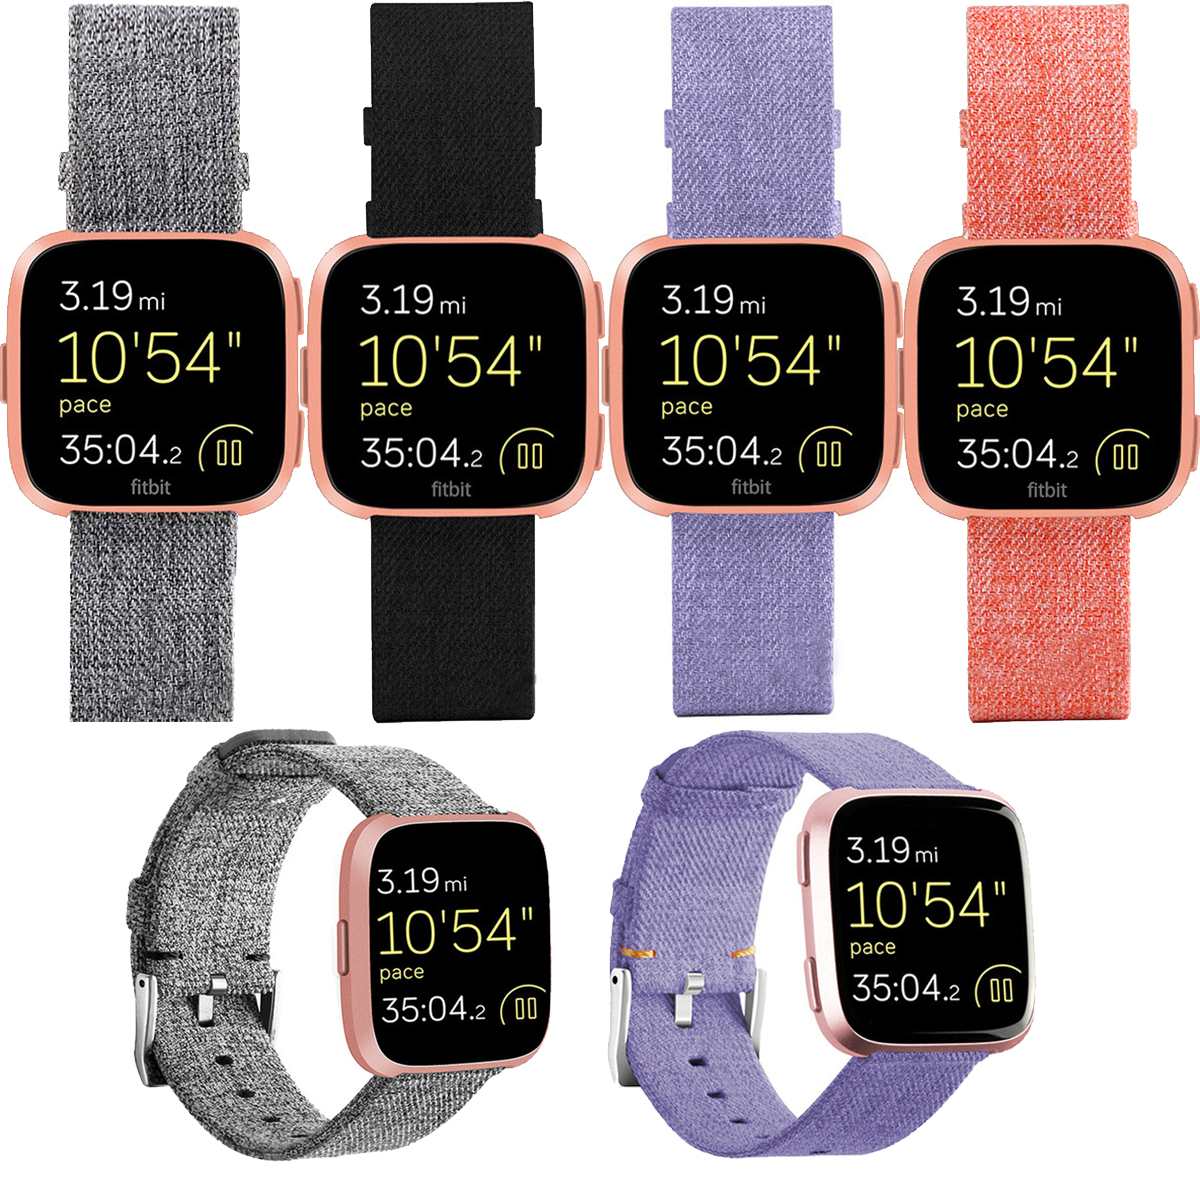 Details about Wrist Straps Band Wristbands Replacement Wristband For Fitbit  Versa Bracelet UK